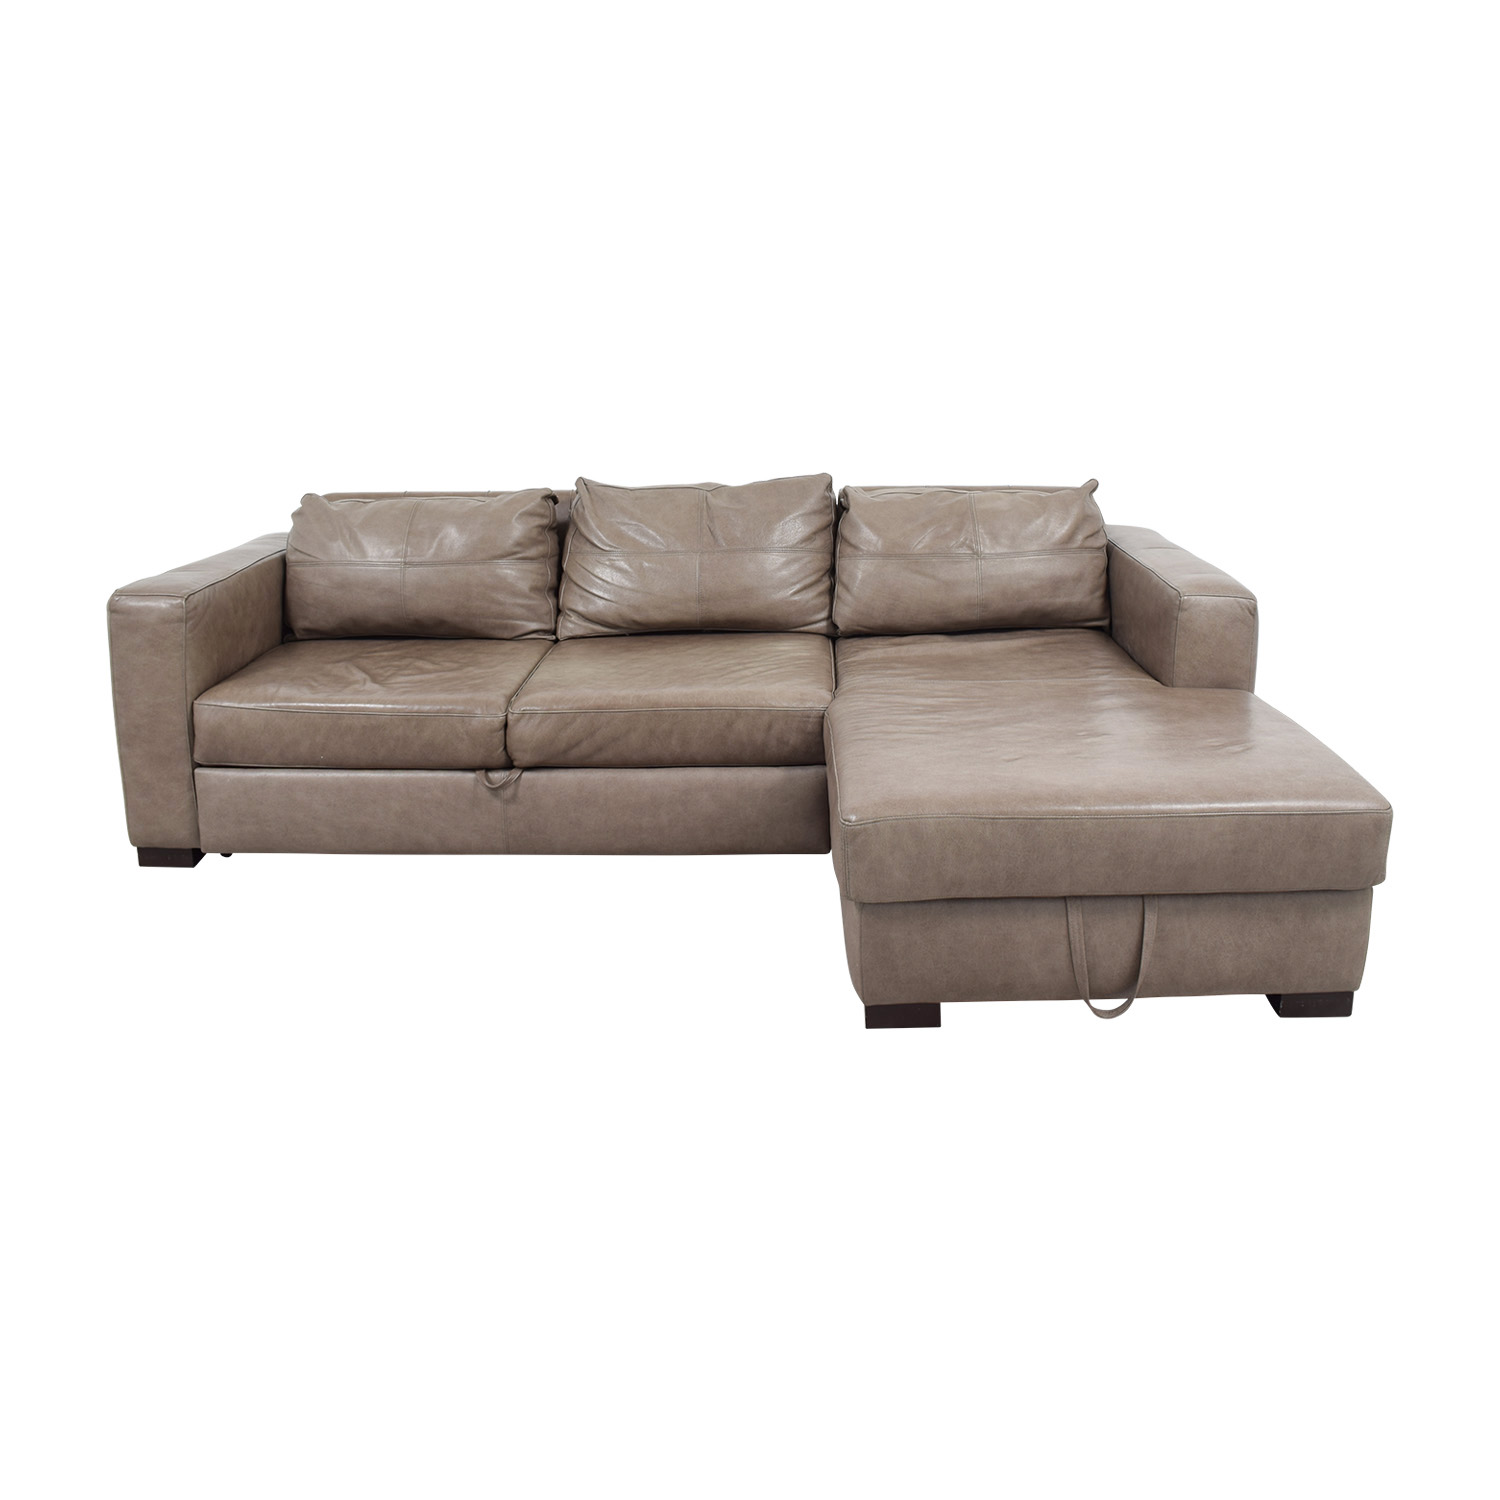 buy Arhaus Grey Soft Leather Convertible Sleeper Sofa Arhaus